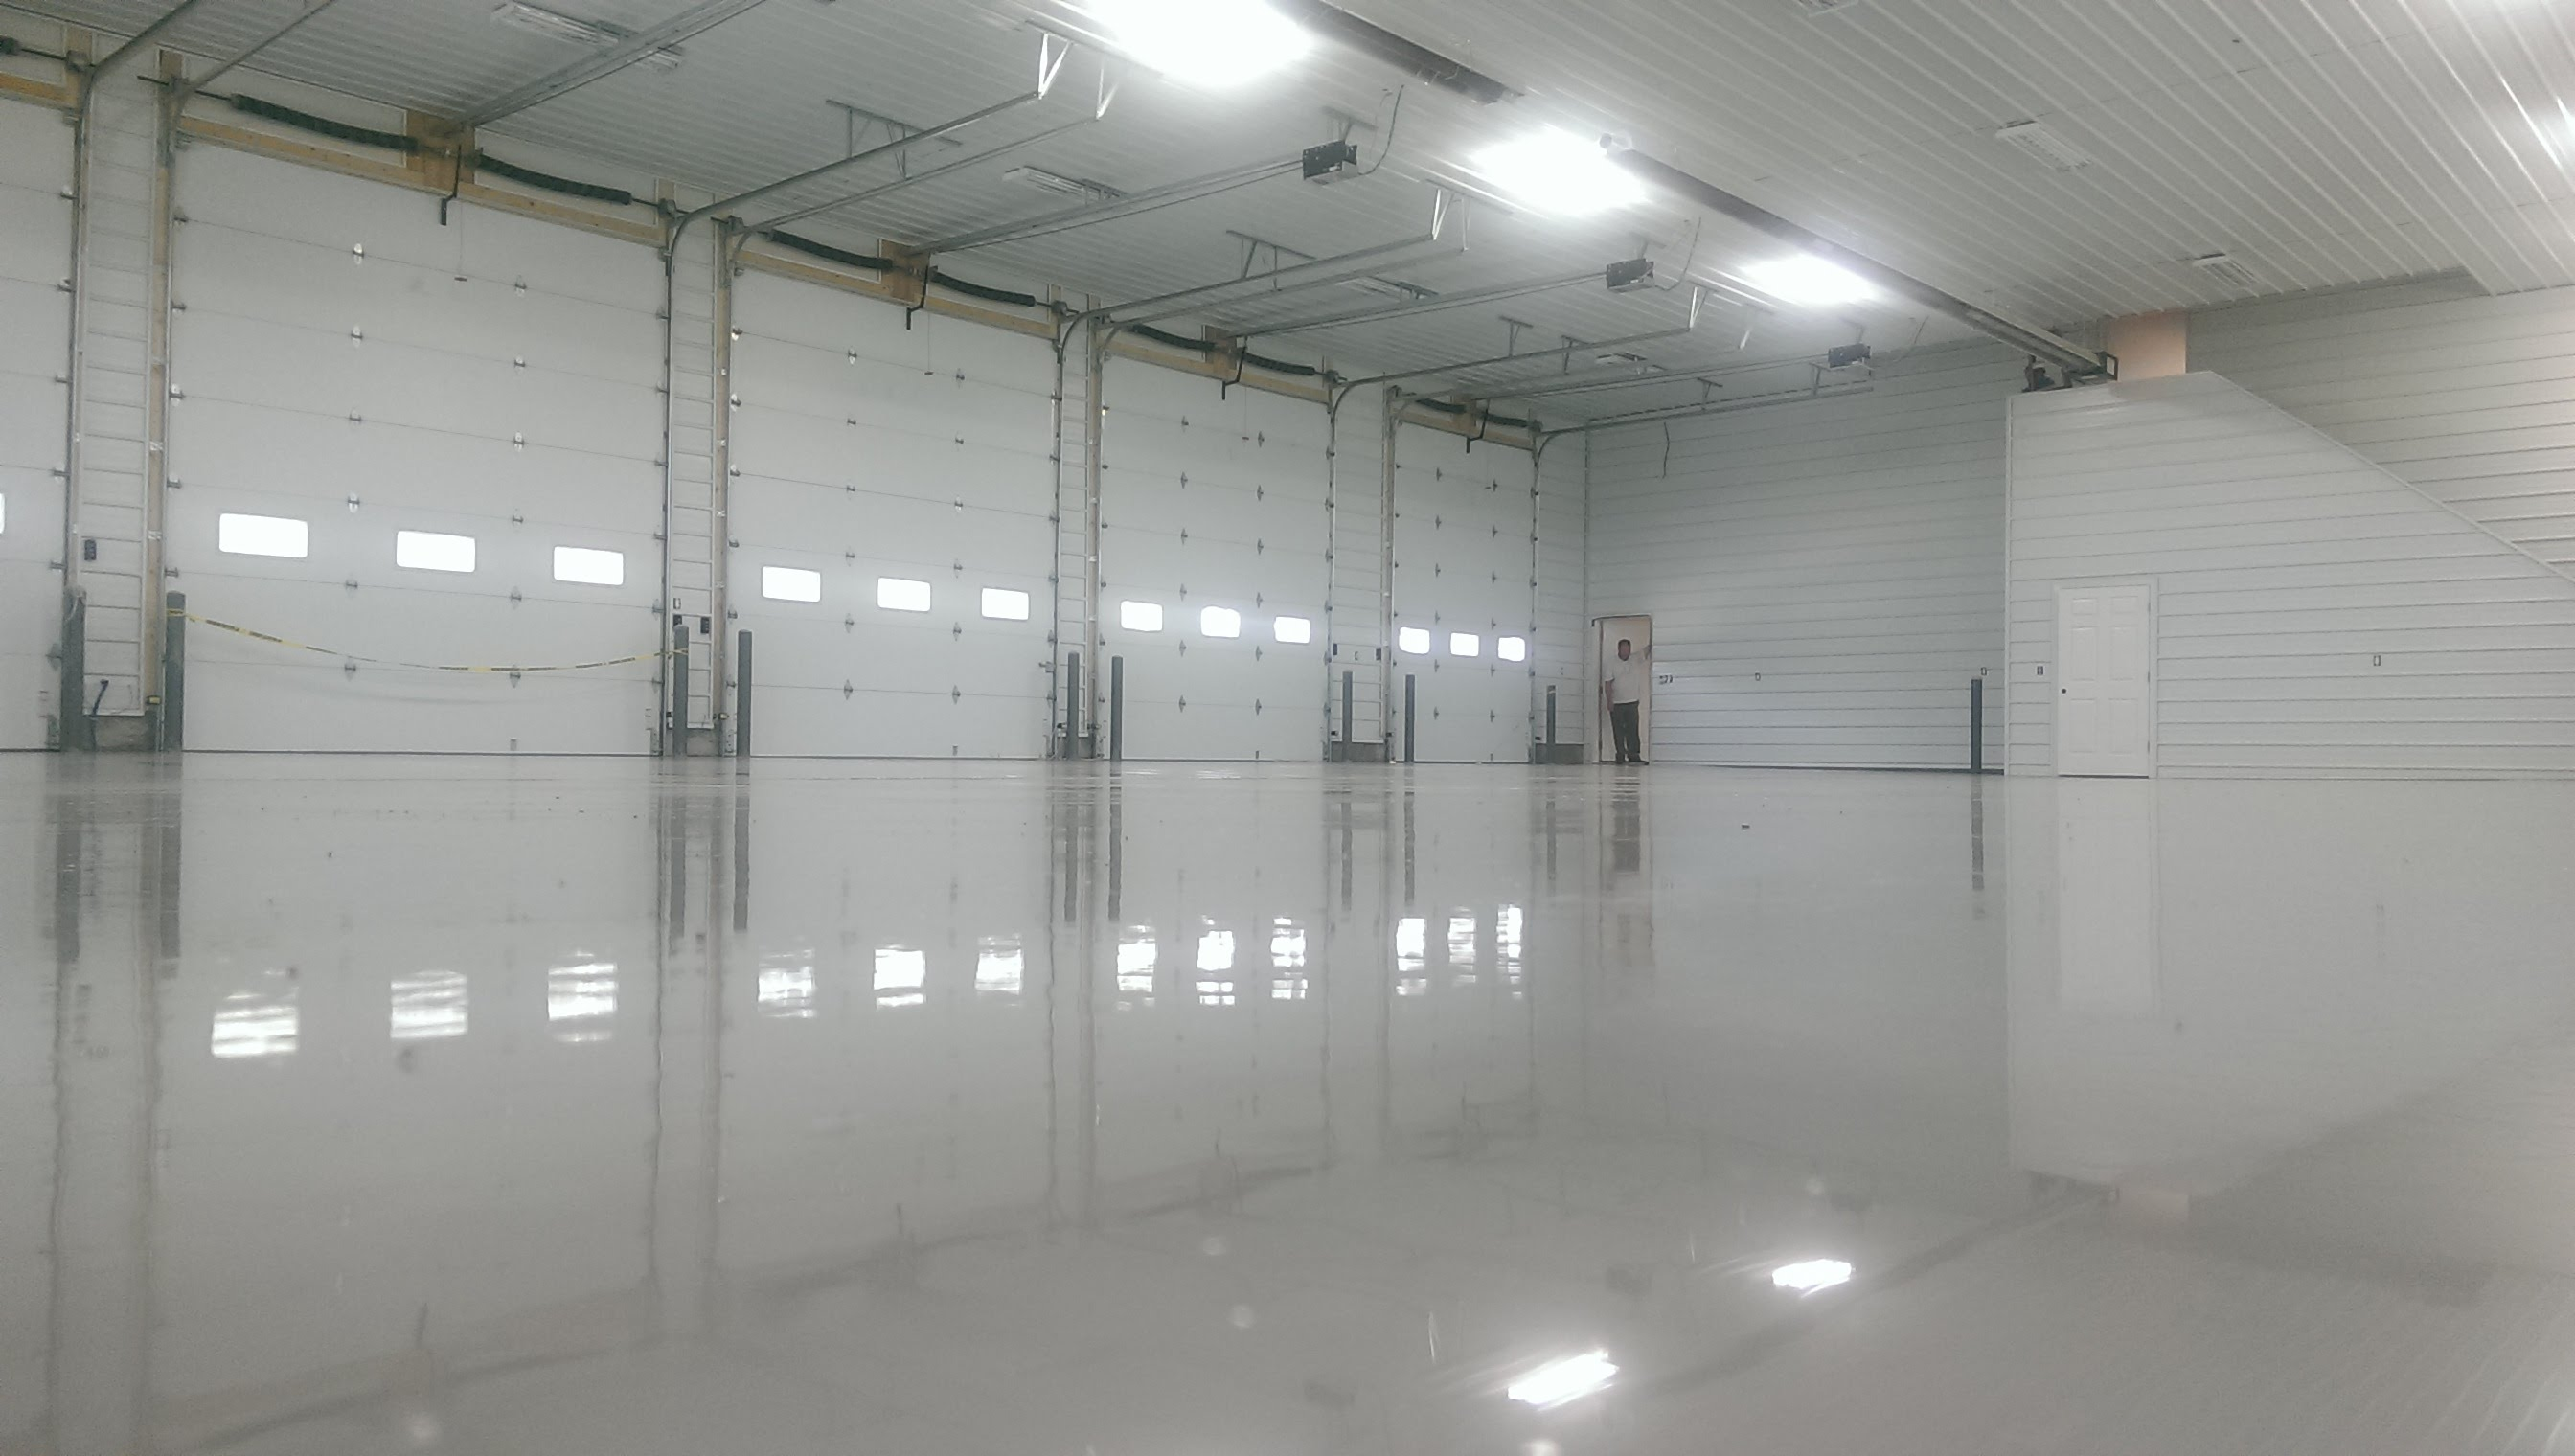 How to Tell if Your Epoxy Garage Floor Is 100% Solid - Epoxy Floors How To Epoxy Garage Floor on how to paint, how to coat rock floor, how to stain garage floor, how to coat garage floor, epoxy concrete floor, how to carpet garage floor,